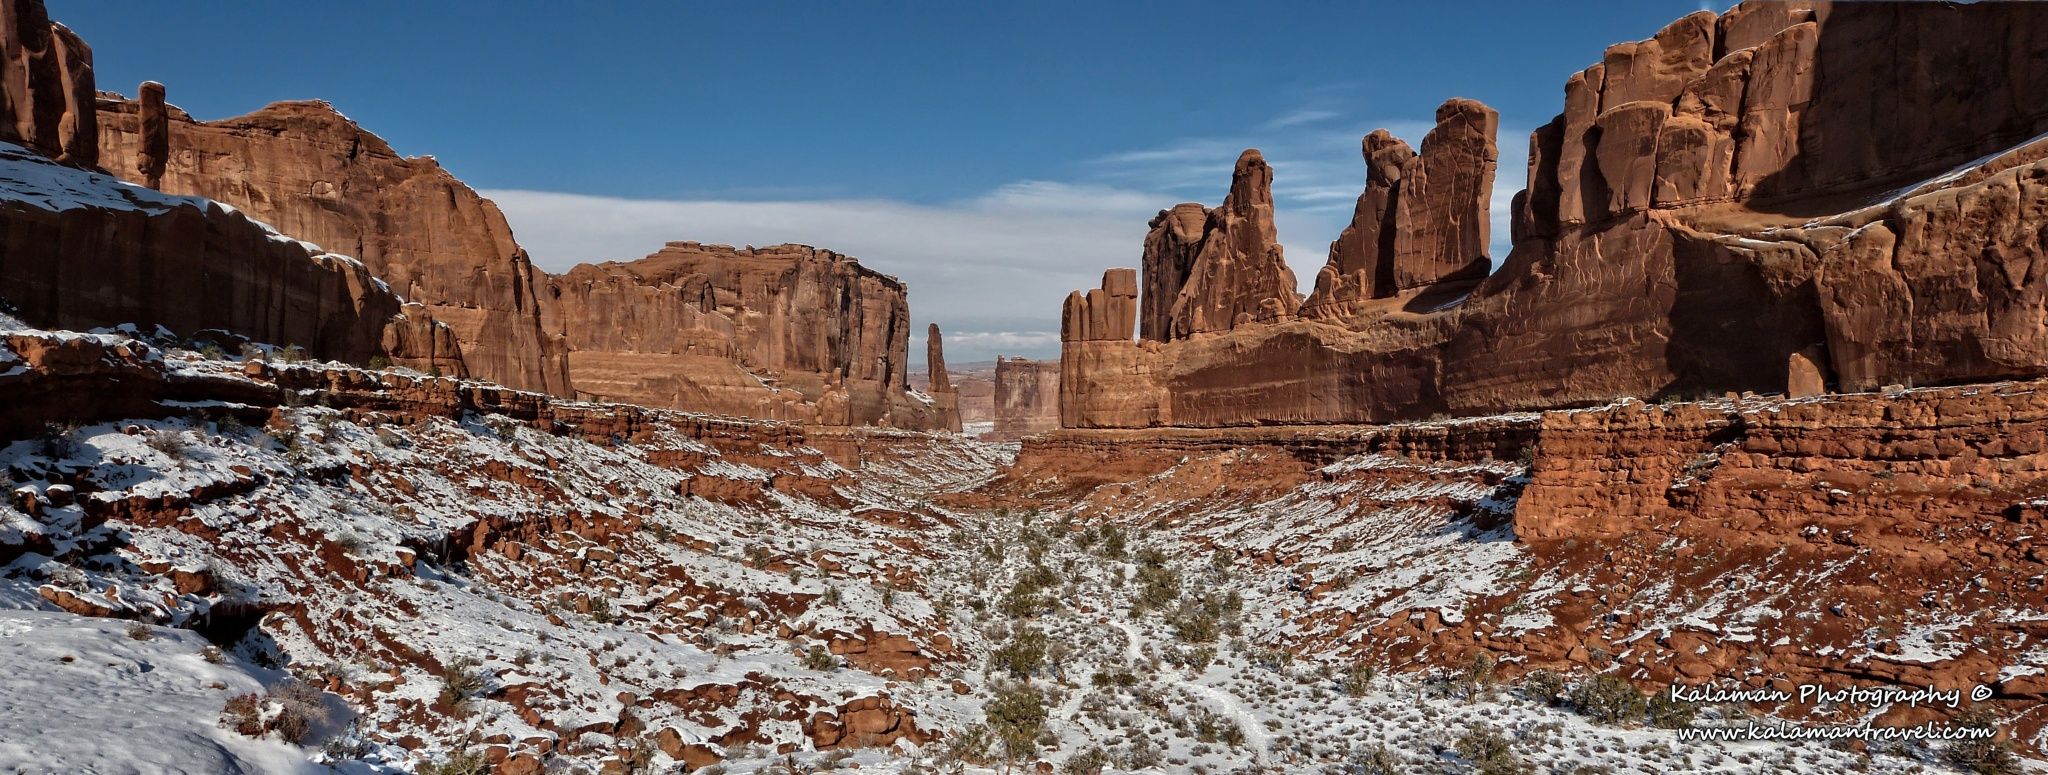 Arches NP by Kalaman Photography